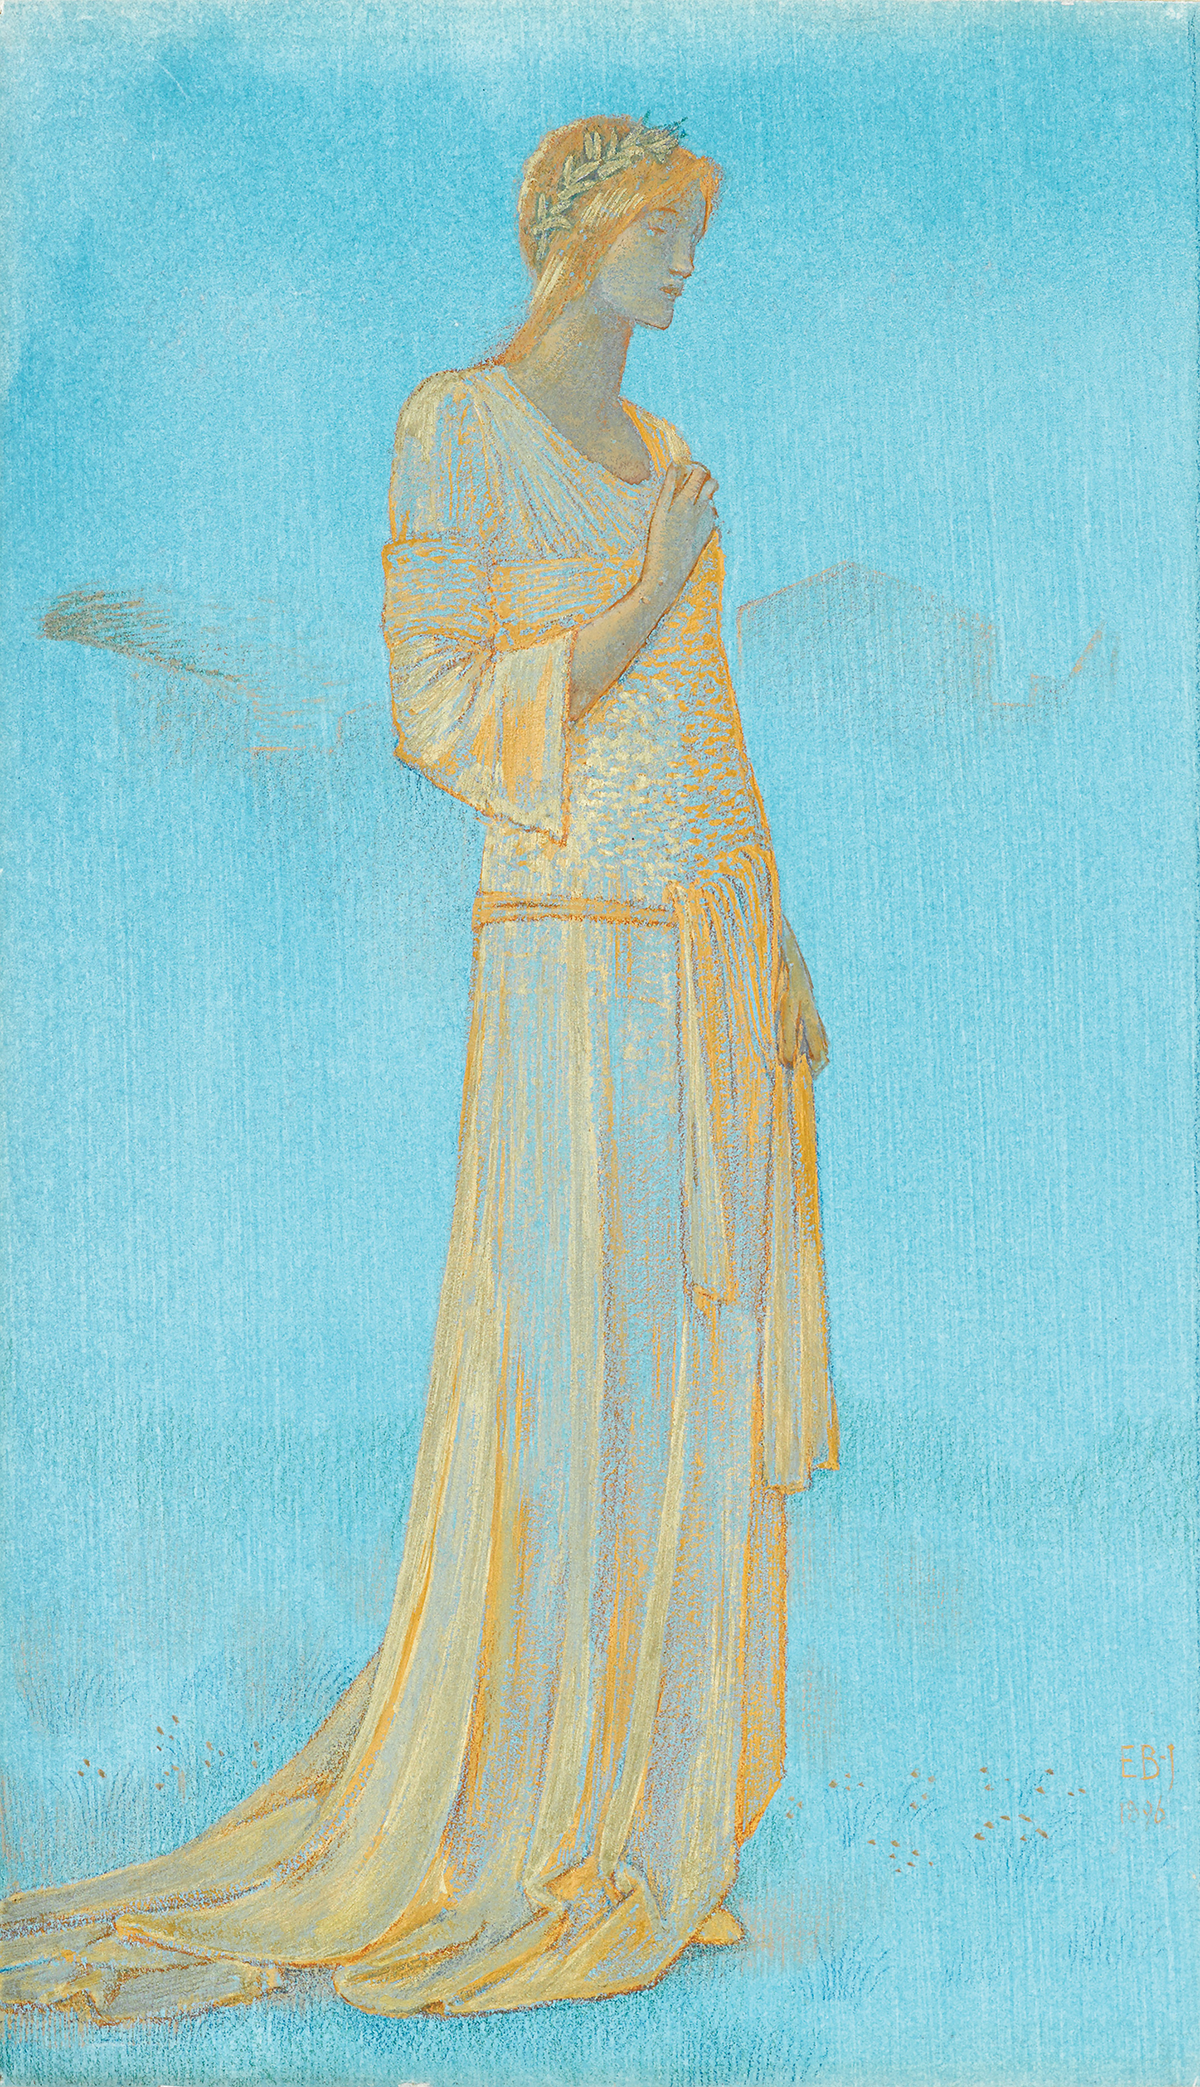 Edward Burne-Jones (British, 1833-1898), Psyche, Gouache and gold chalk on paper, Sold at Freeman's for $194,500